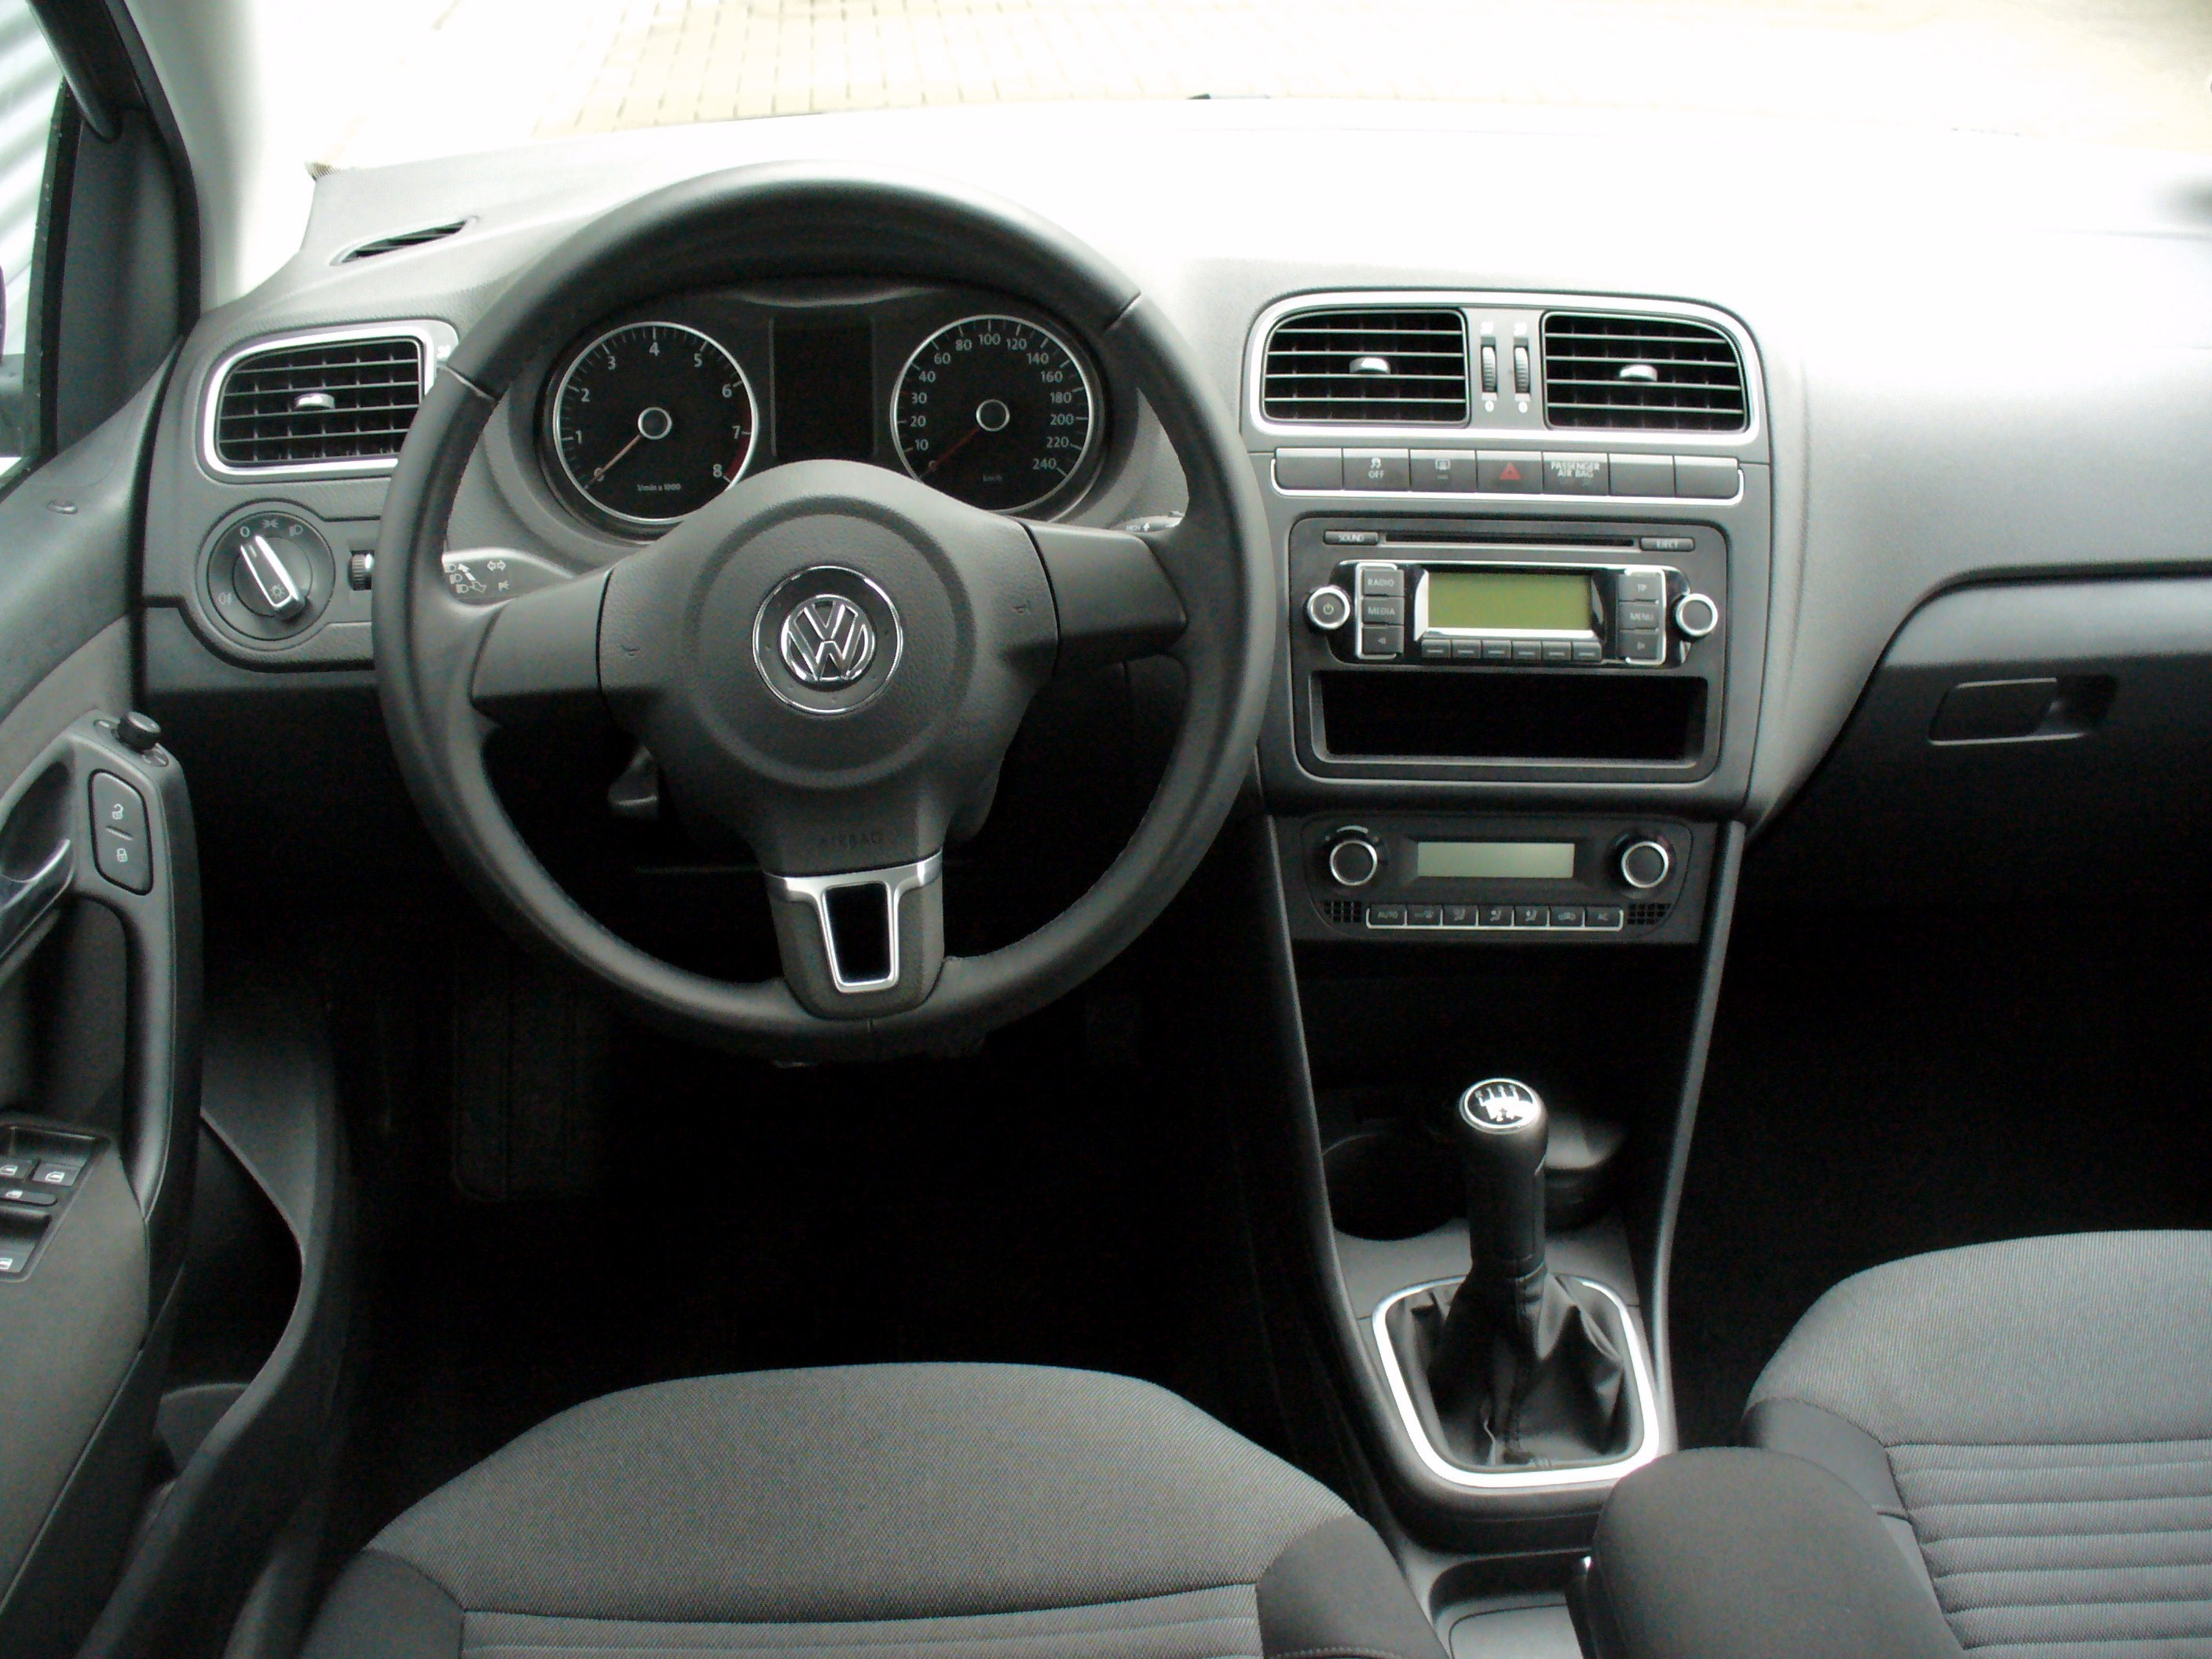 file vw polo v 1 2 comfortline pepper grey interieur jpg wikimedia commons. Black Bedroom Furniture Sets. Home Design Ideas